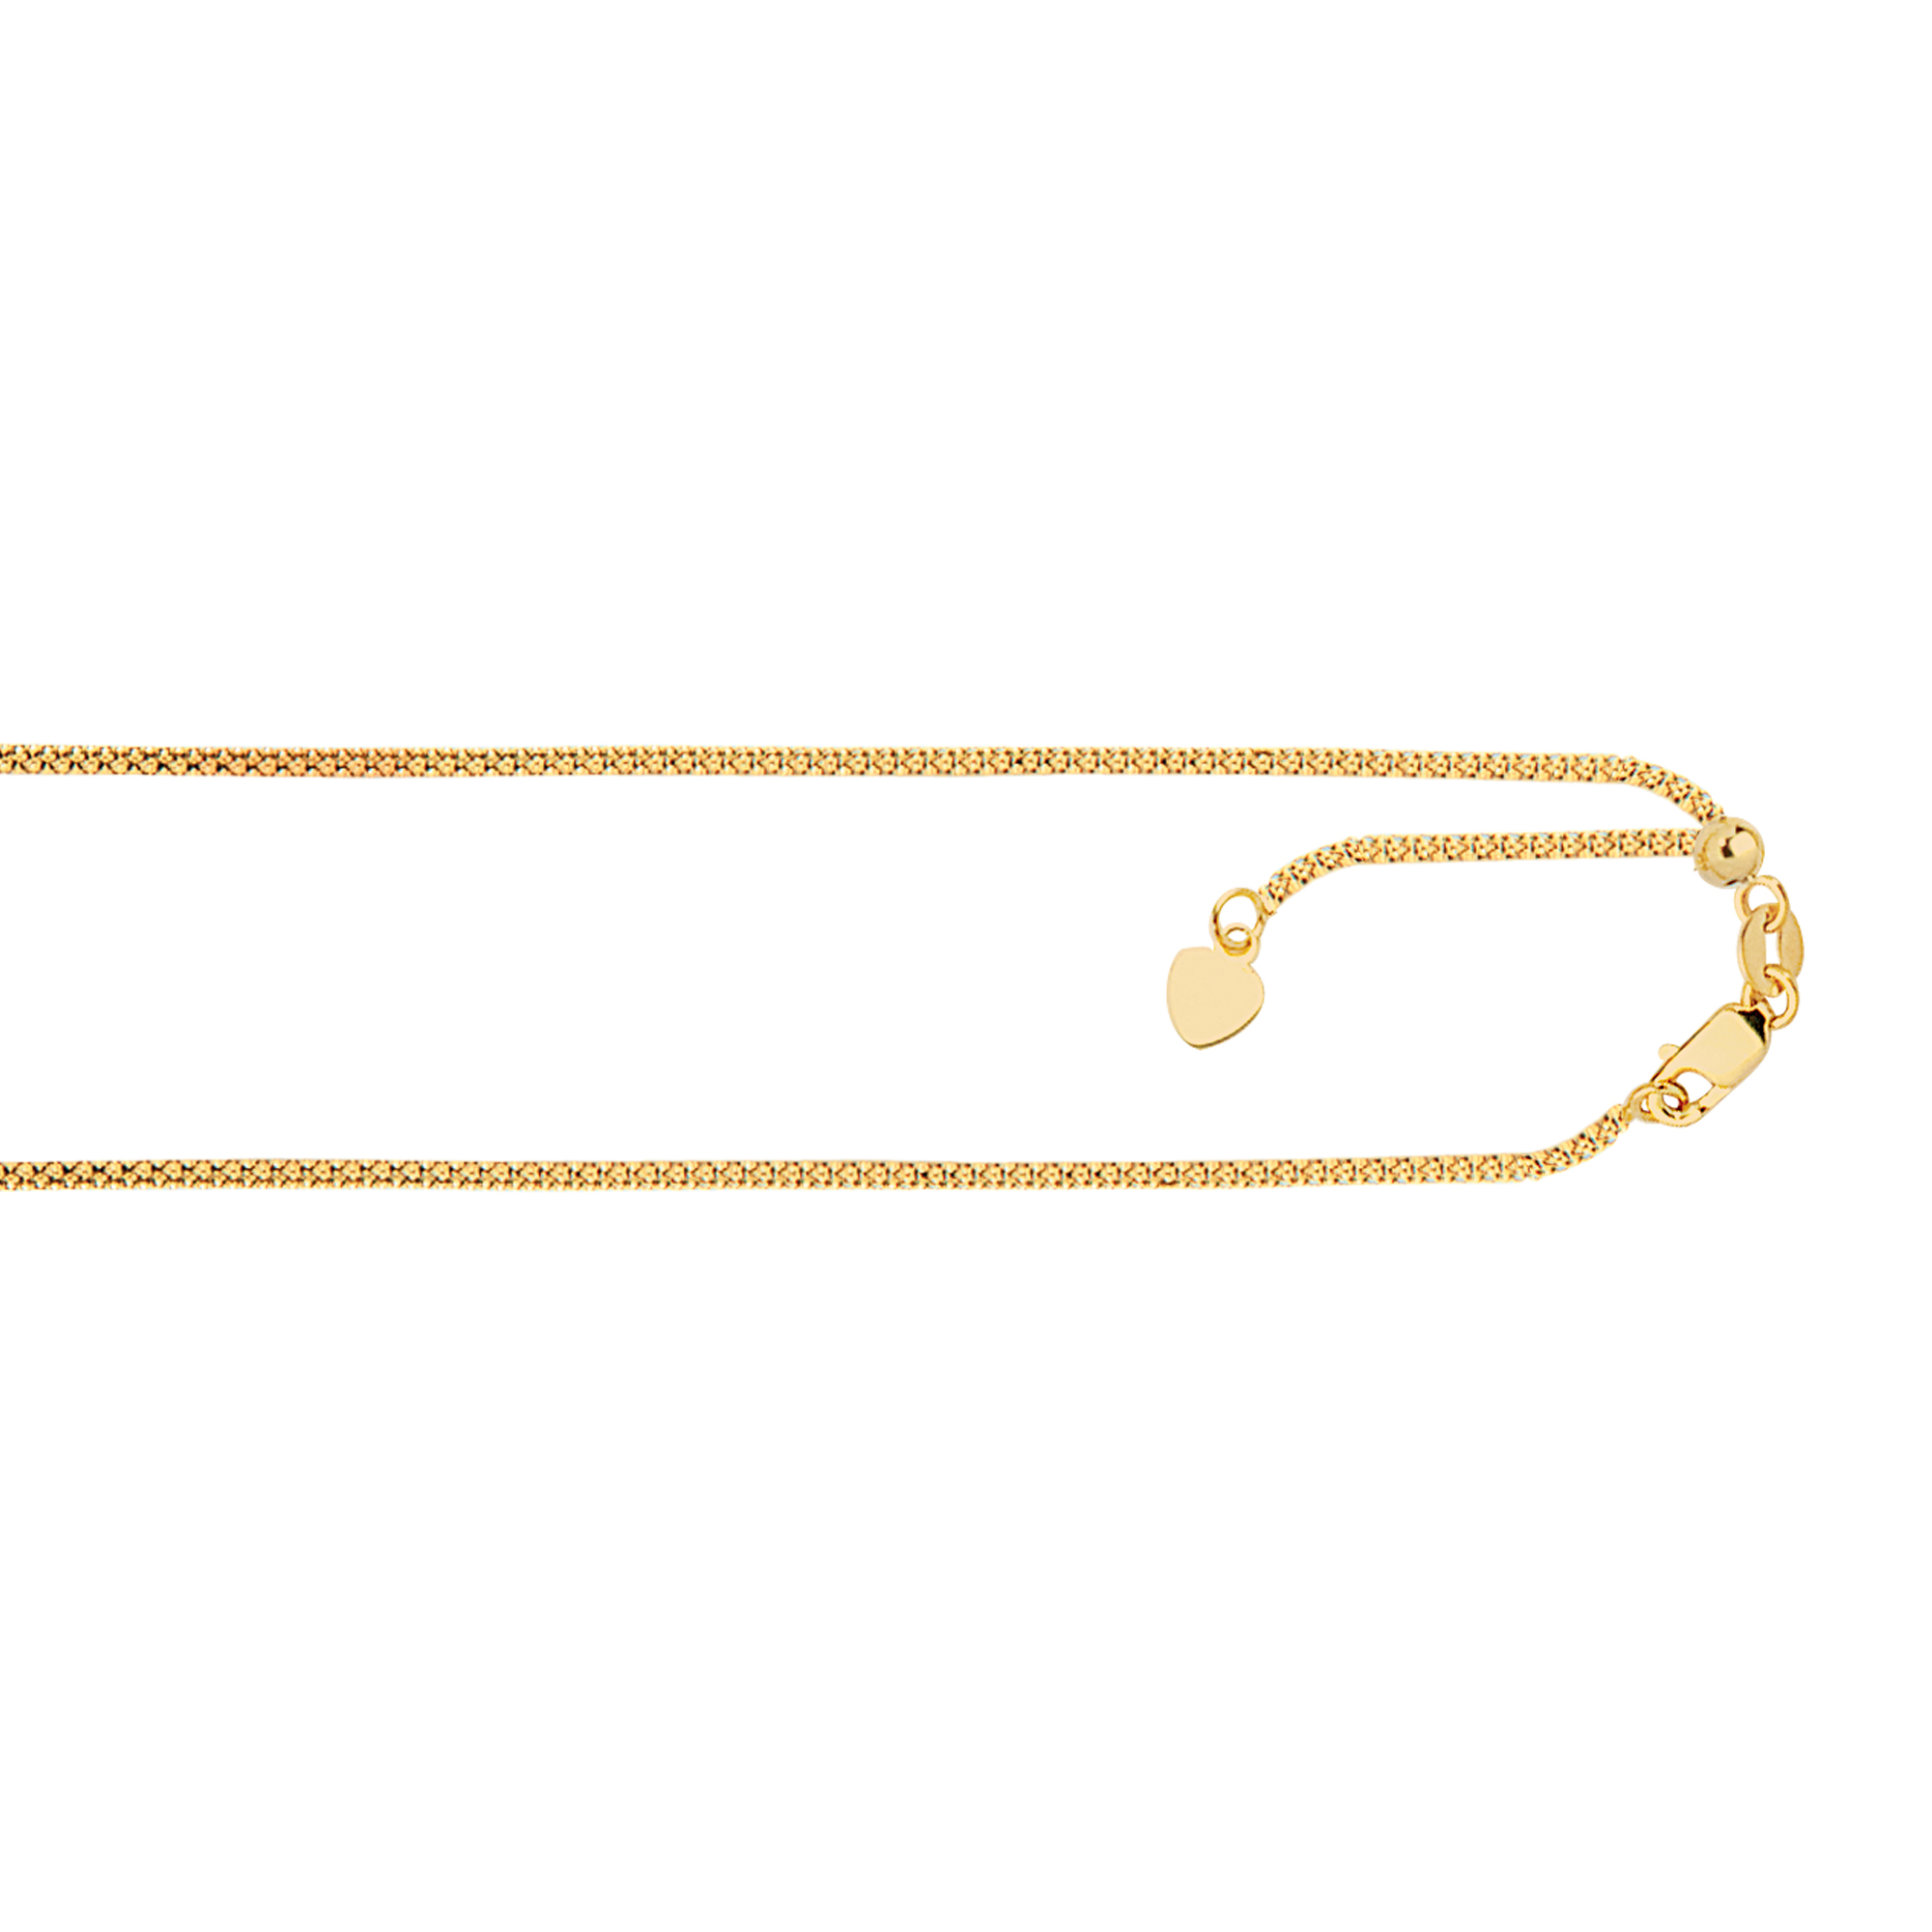 LUXURMAN Solid 14k Gold Popcorn Chain For Men & Women Adjustable 1.3mm